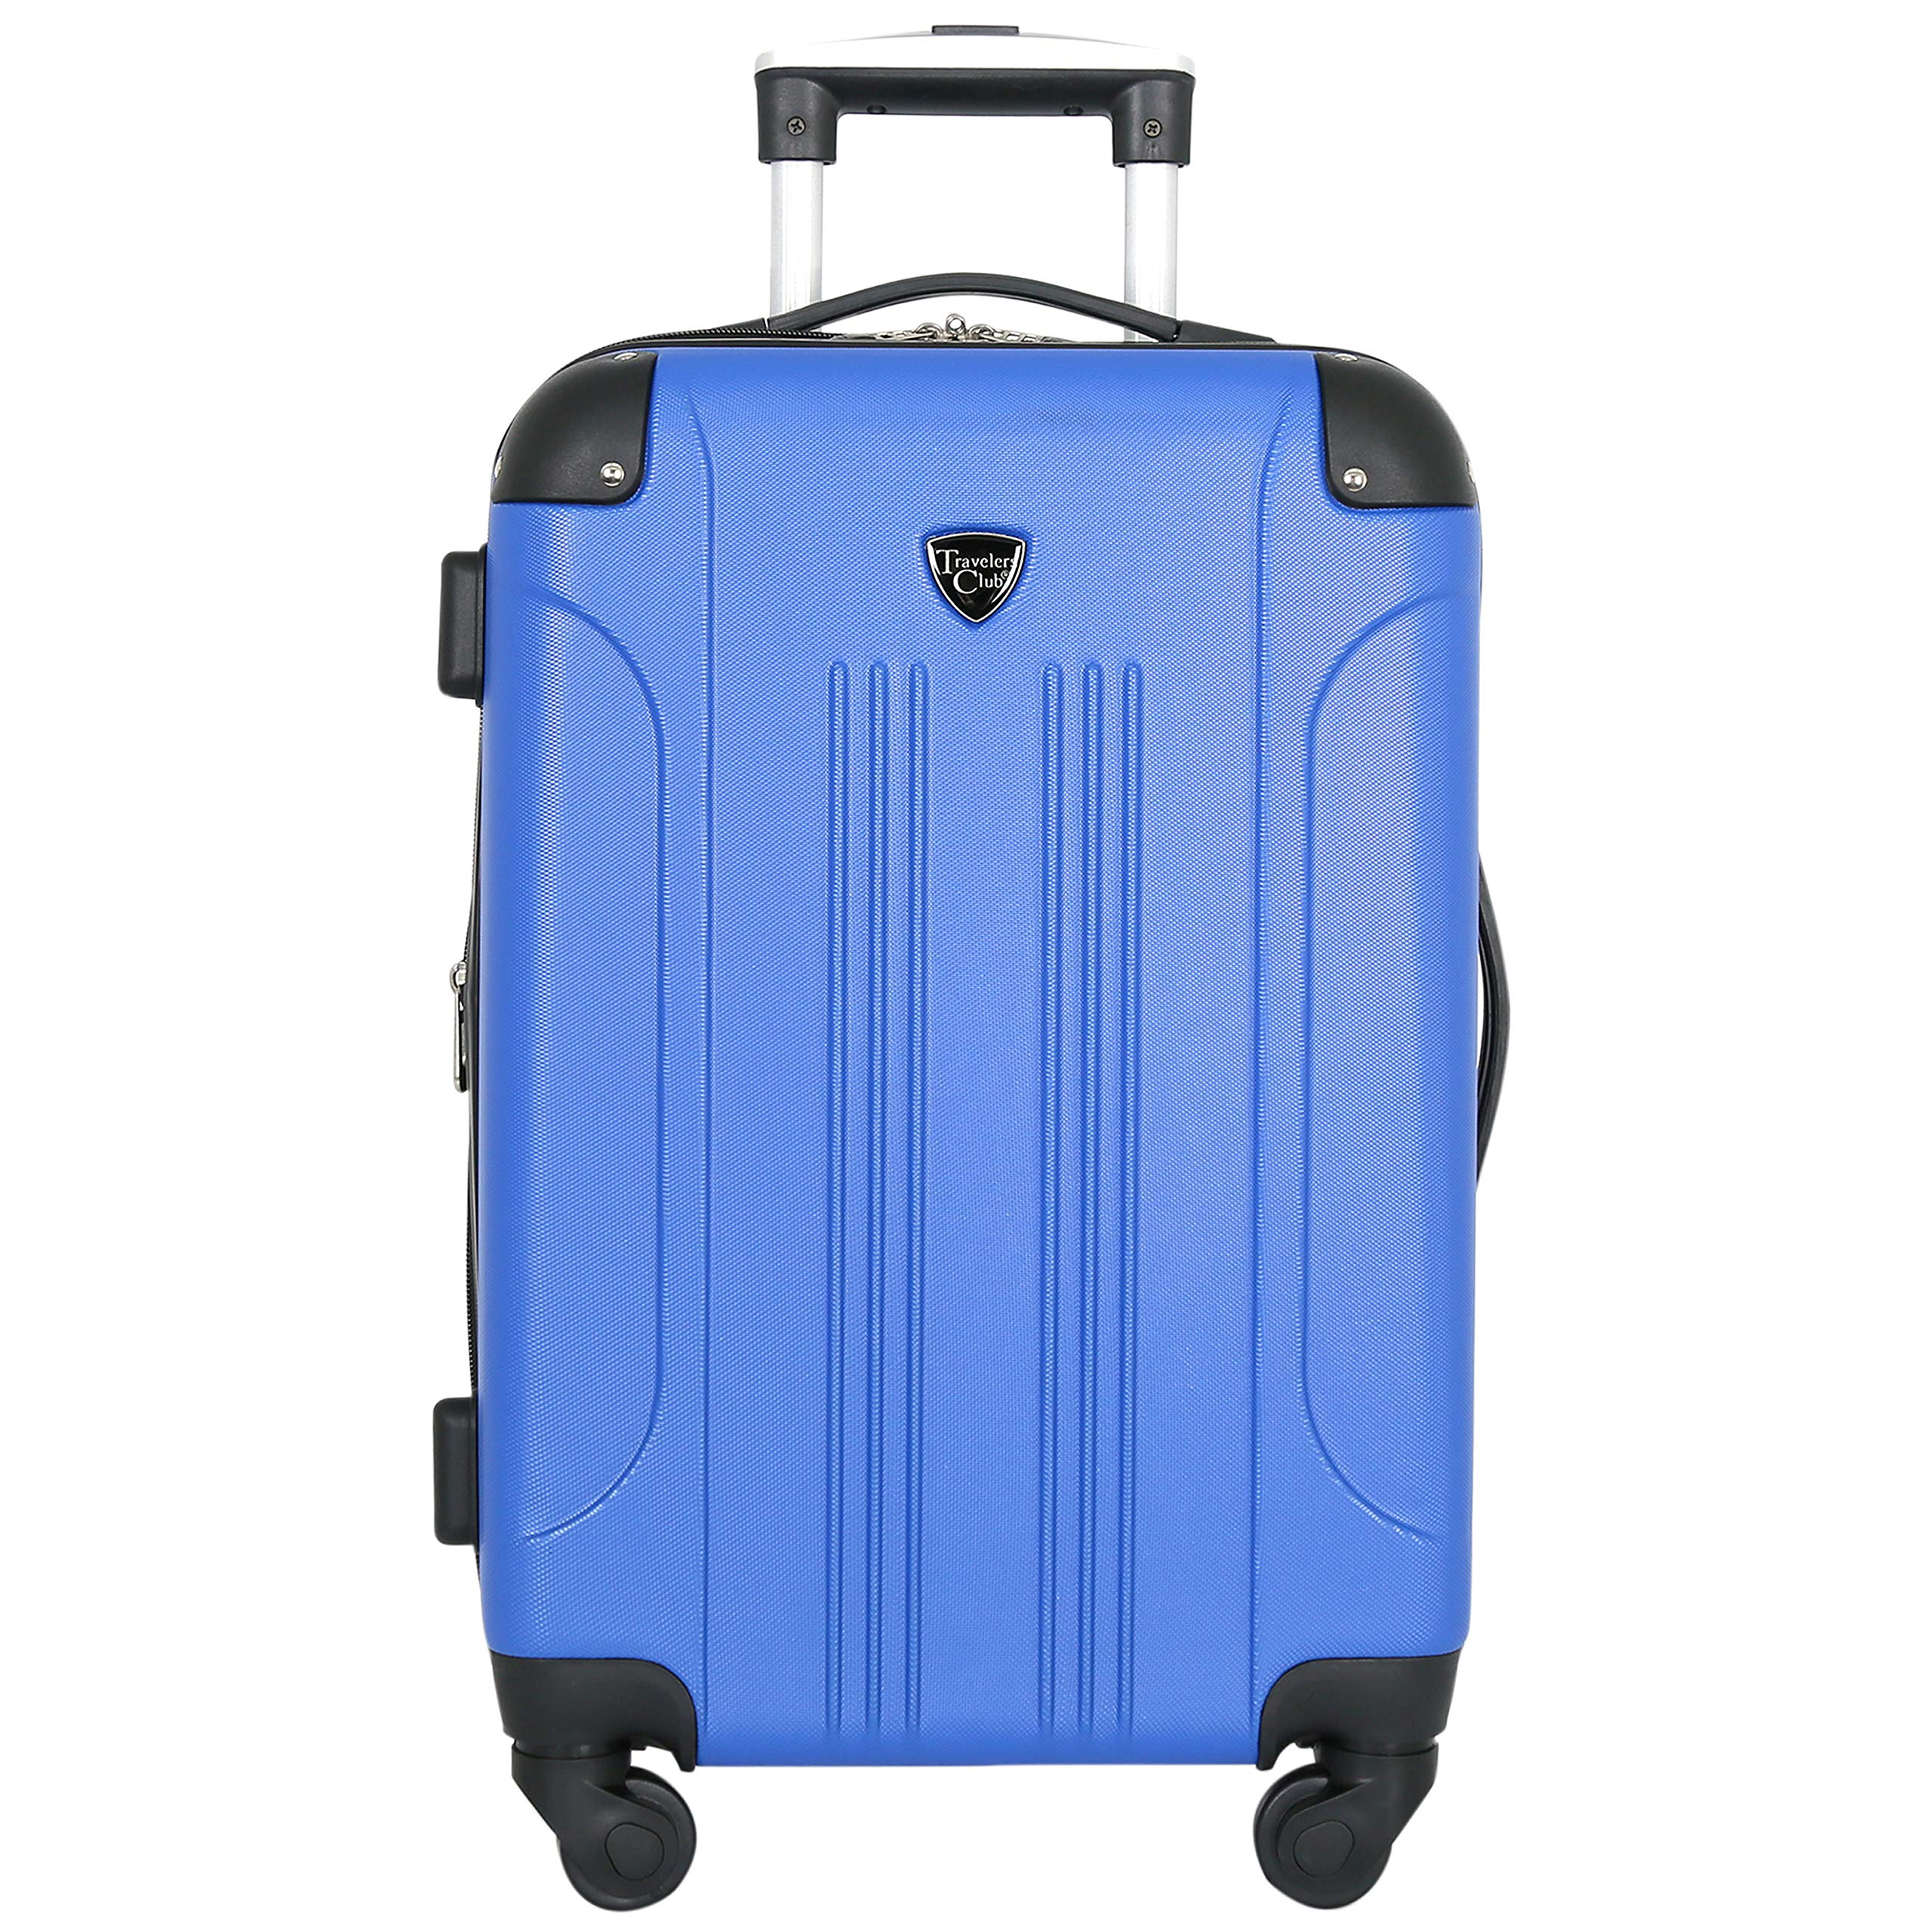 Travelers Club Luggage Chicago 20'' Hardside Expandable Carry-on Spinner, Cobalt Blue